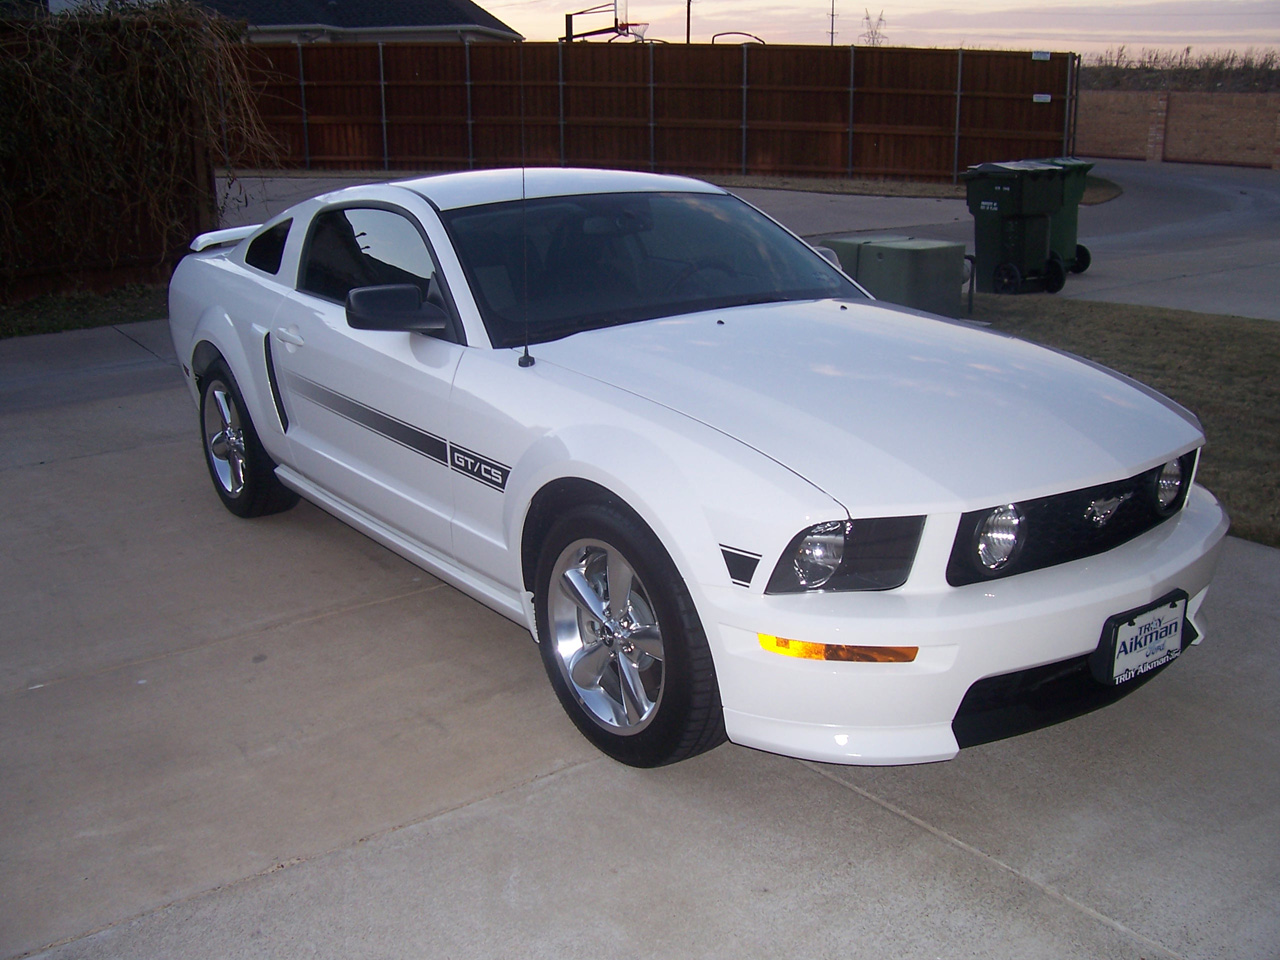 Ford Mustang For Sale - Hemmings Motor News 2007 ford mustang gt california special pictures